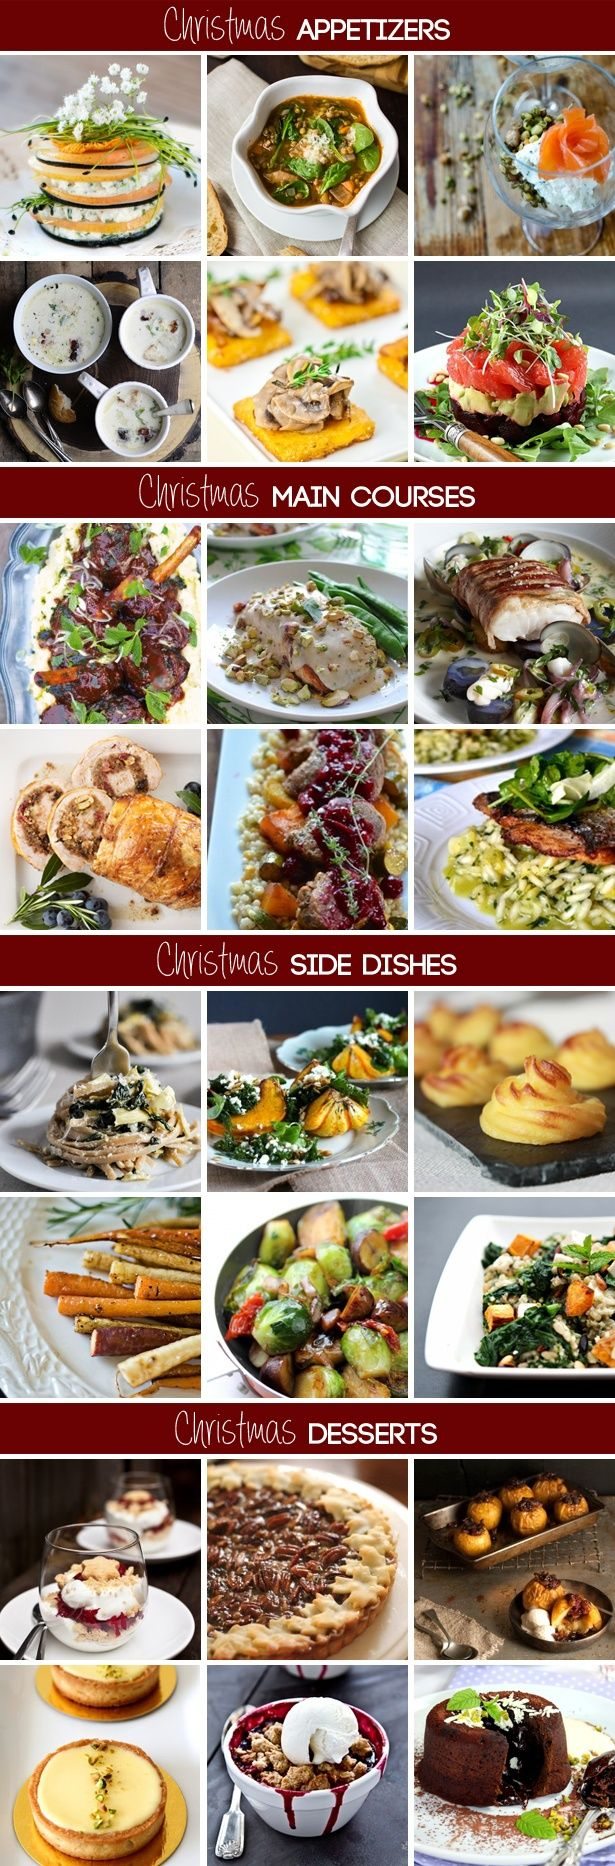 Pinterest for Dinner main course recipes